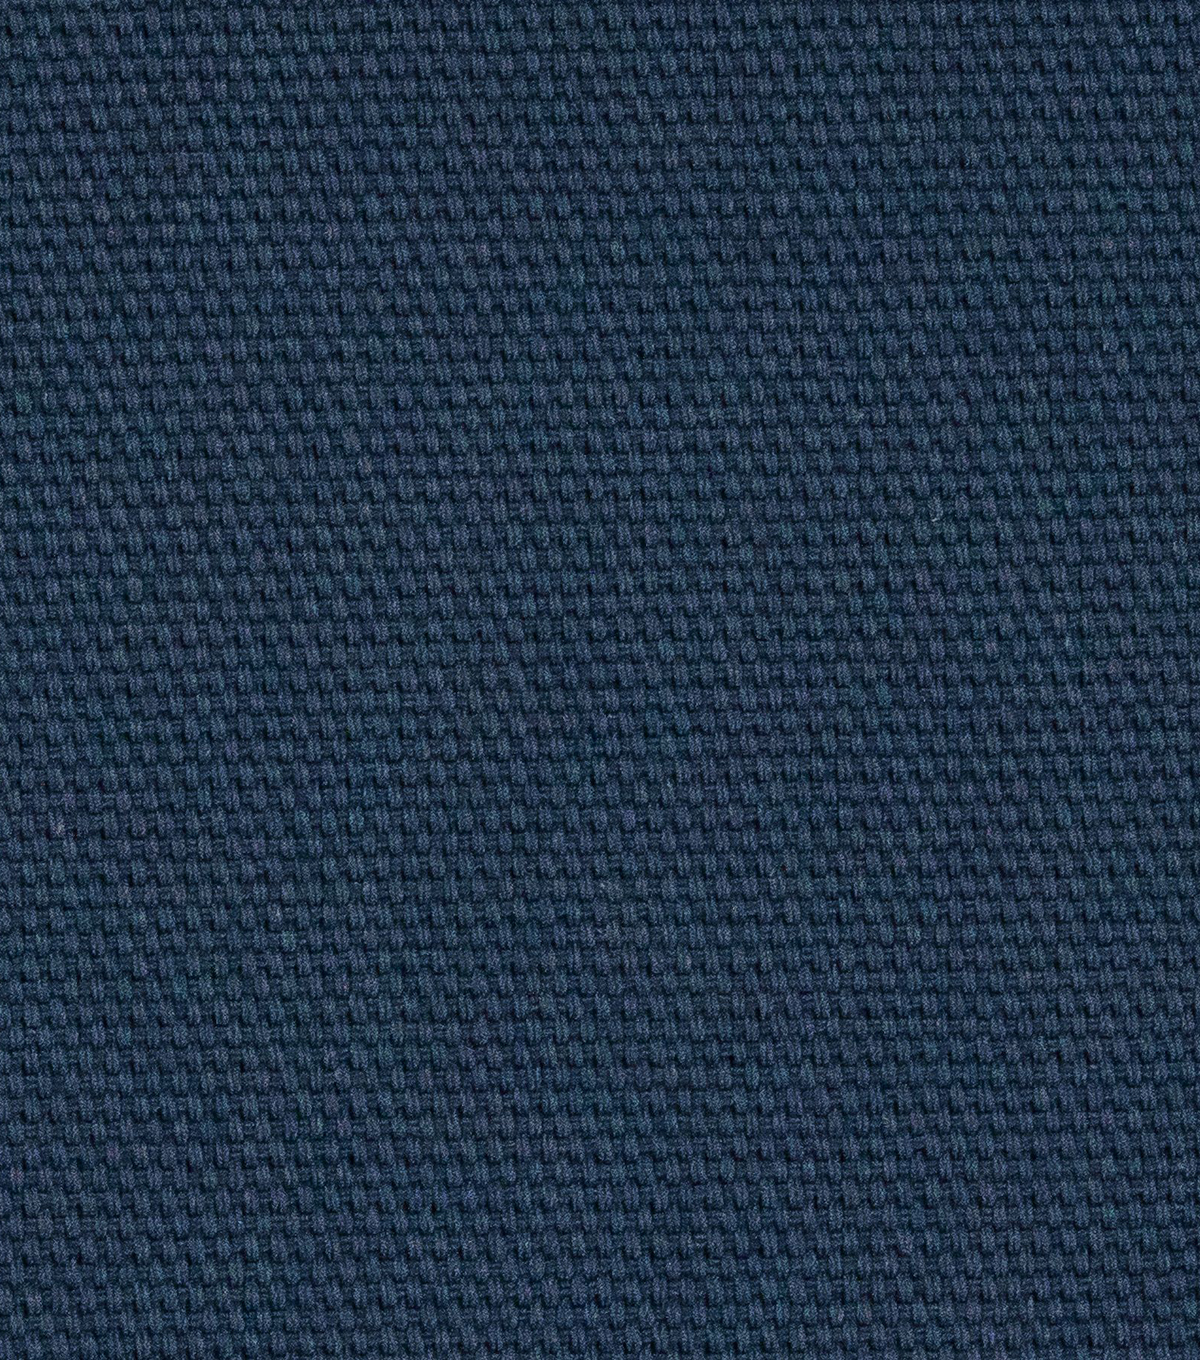 Home Decor 8\u0022x8\u0022 Fabric Swatch-Elite Orion Dark Sea